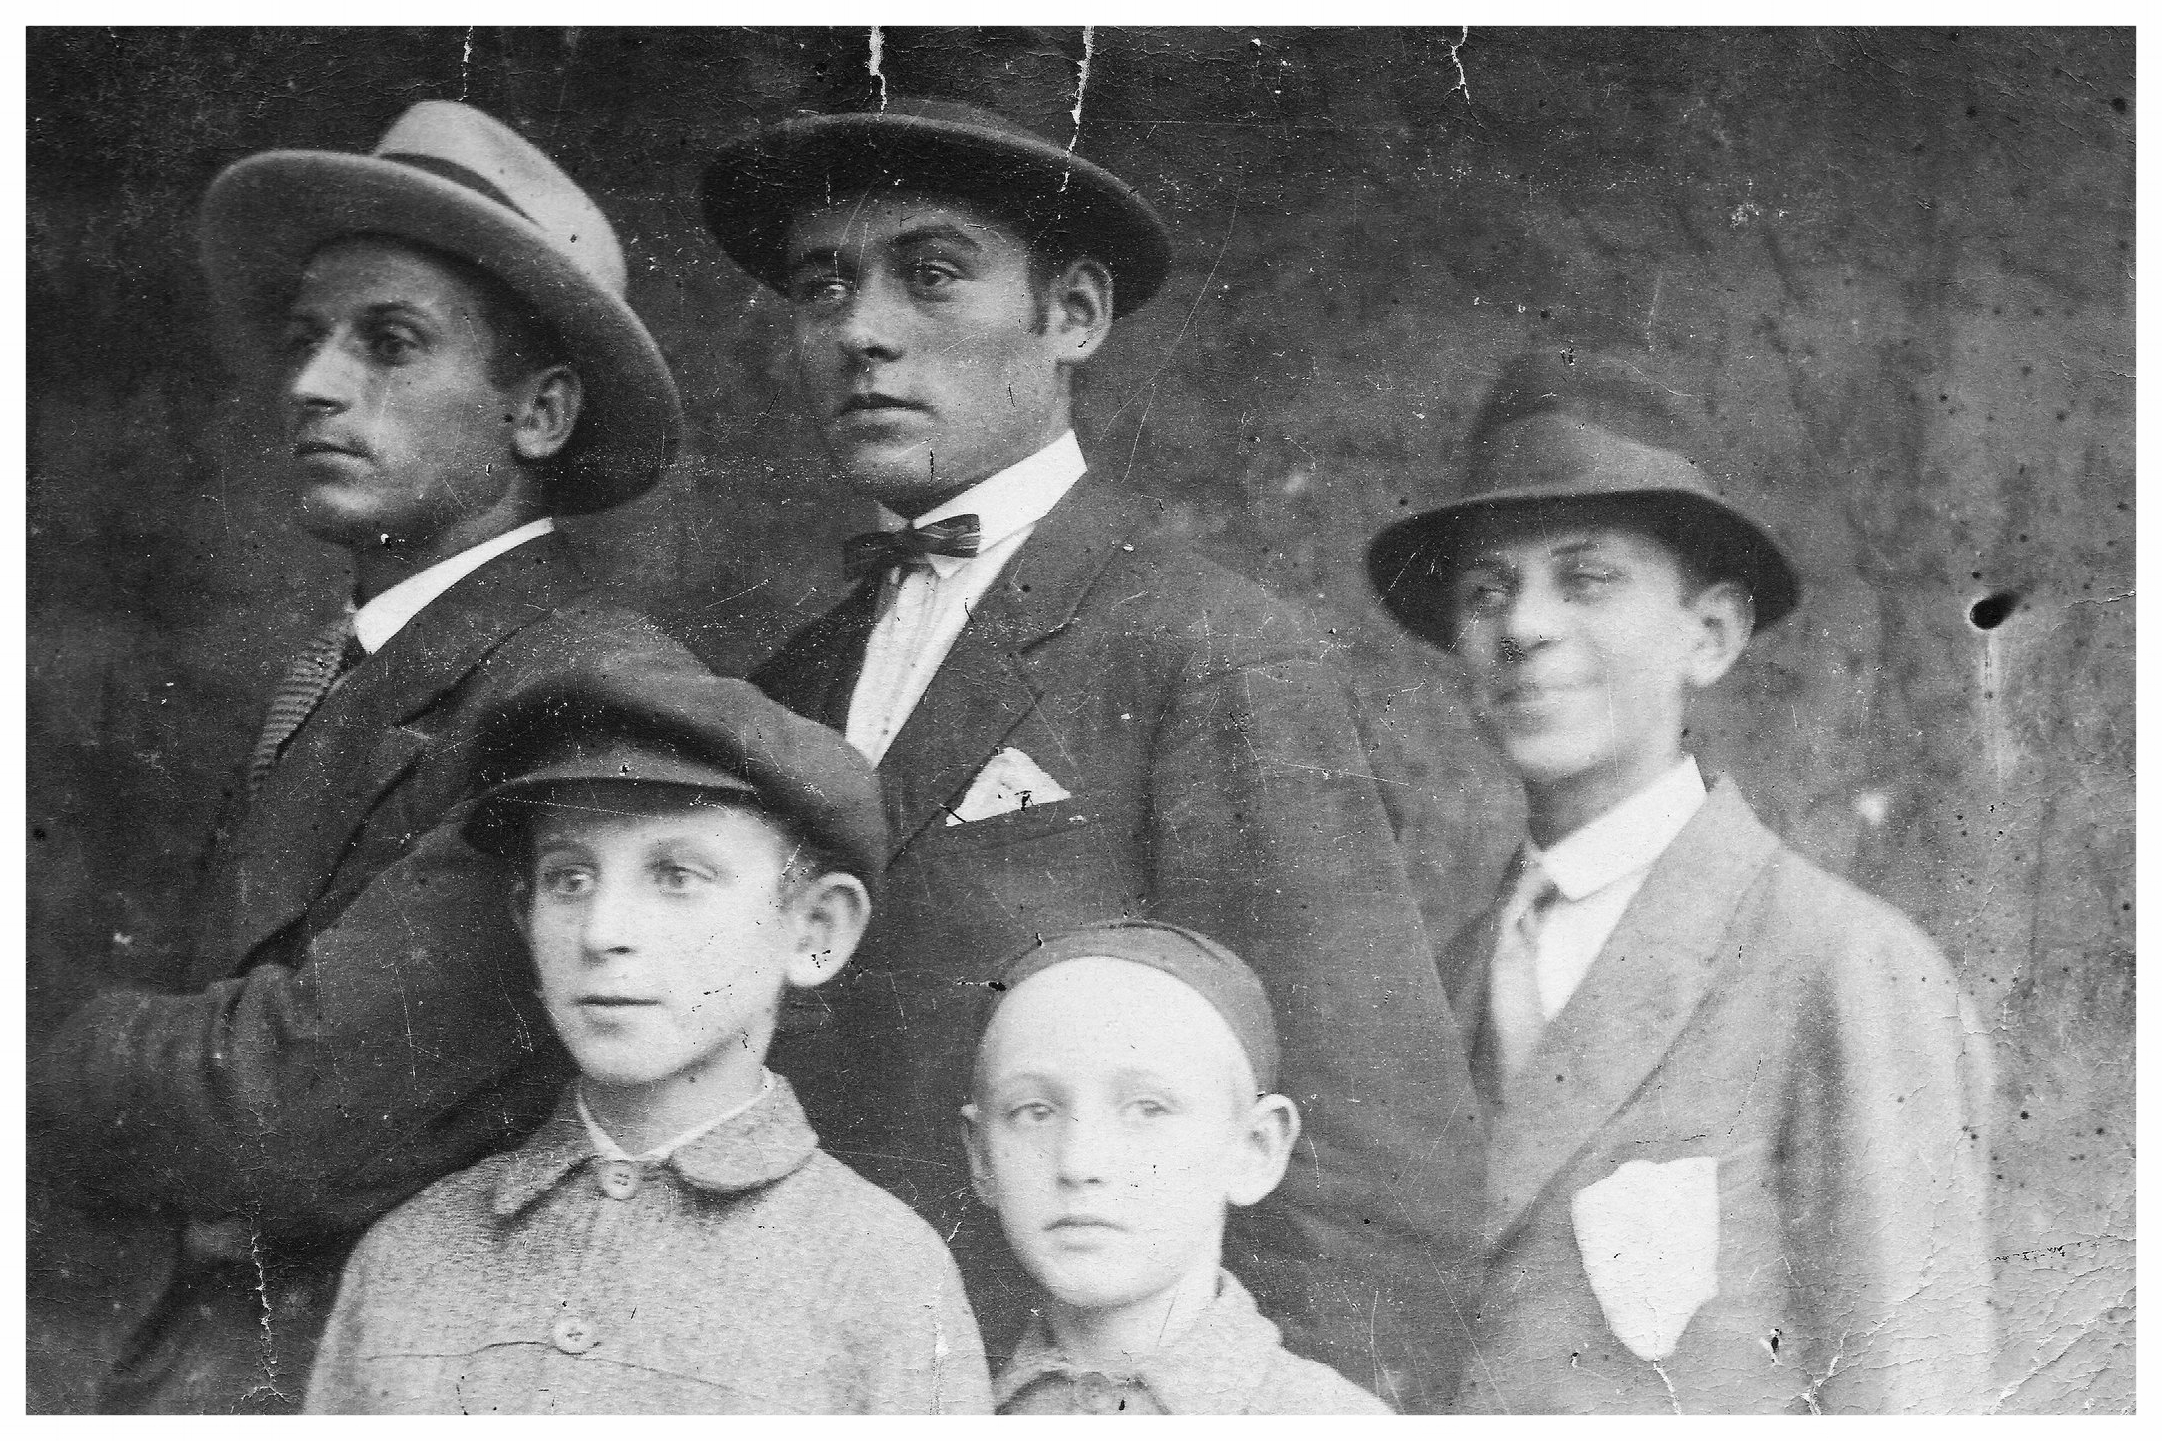 Kovary Brothers c. 1928: David, Betzalel, Andor (with pocket hanky), Theodore. Alfred